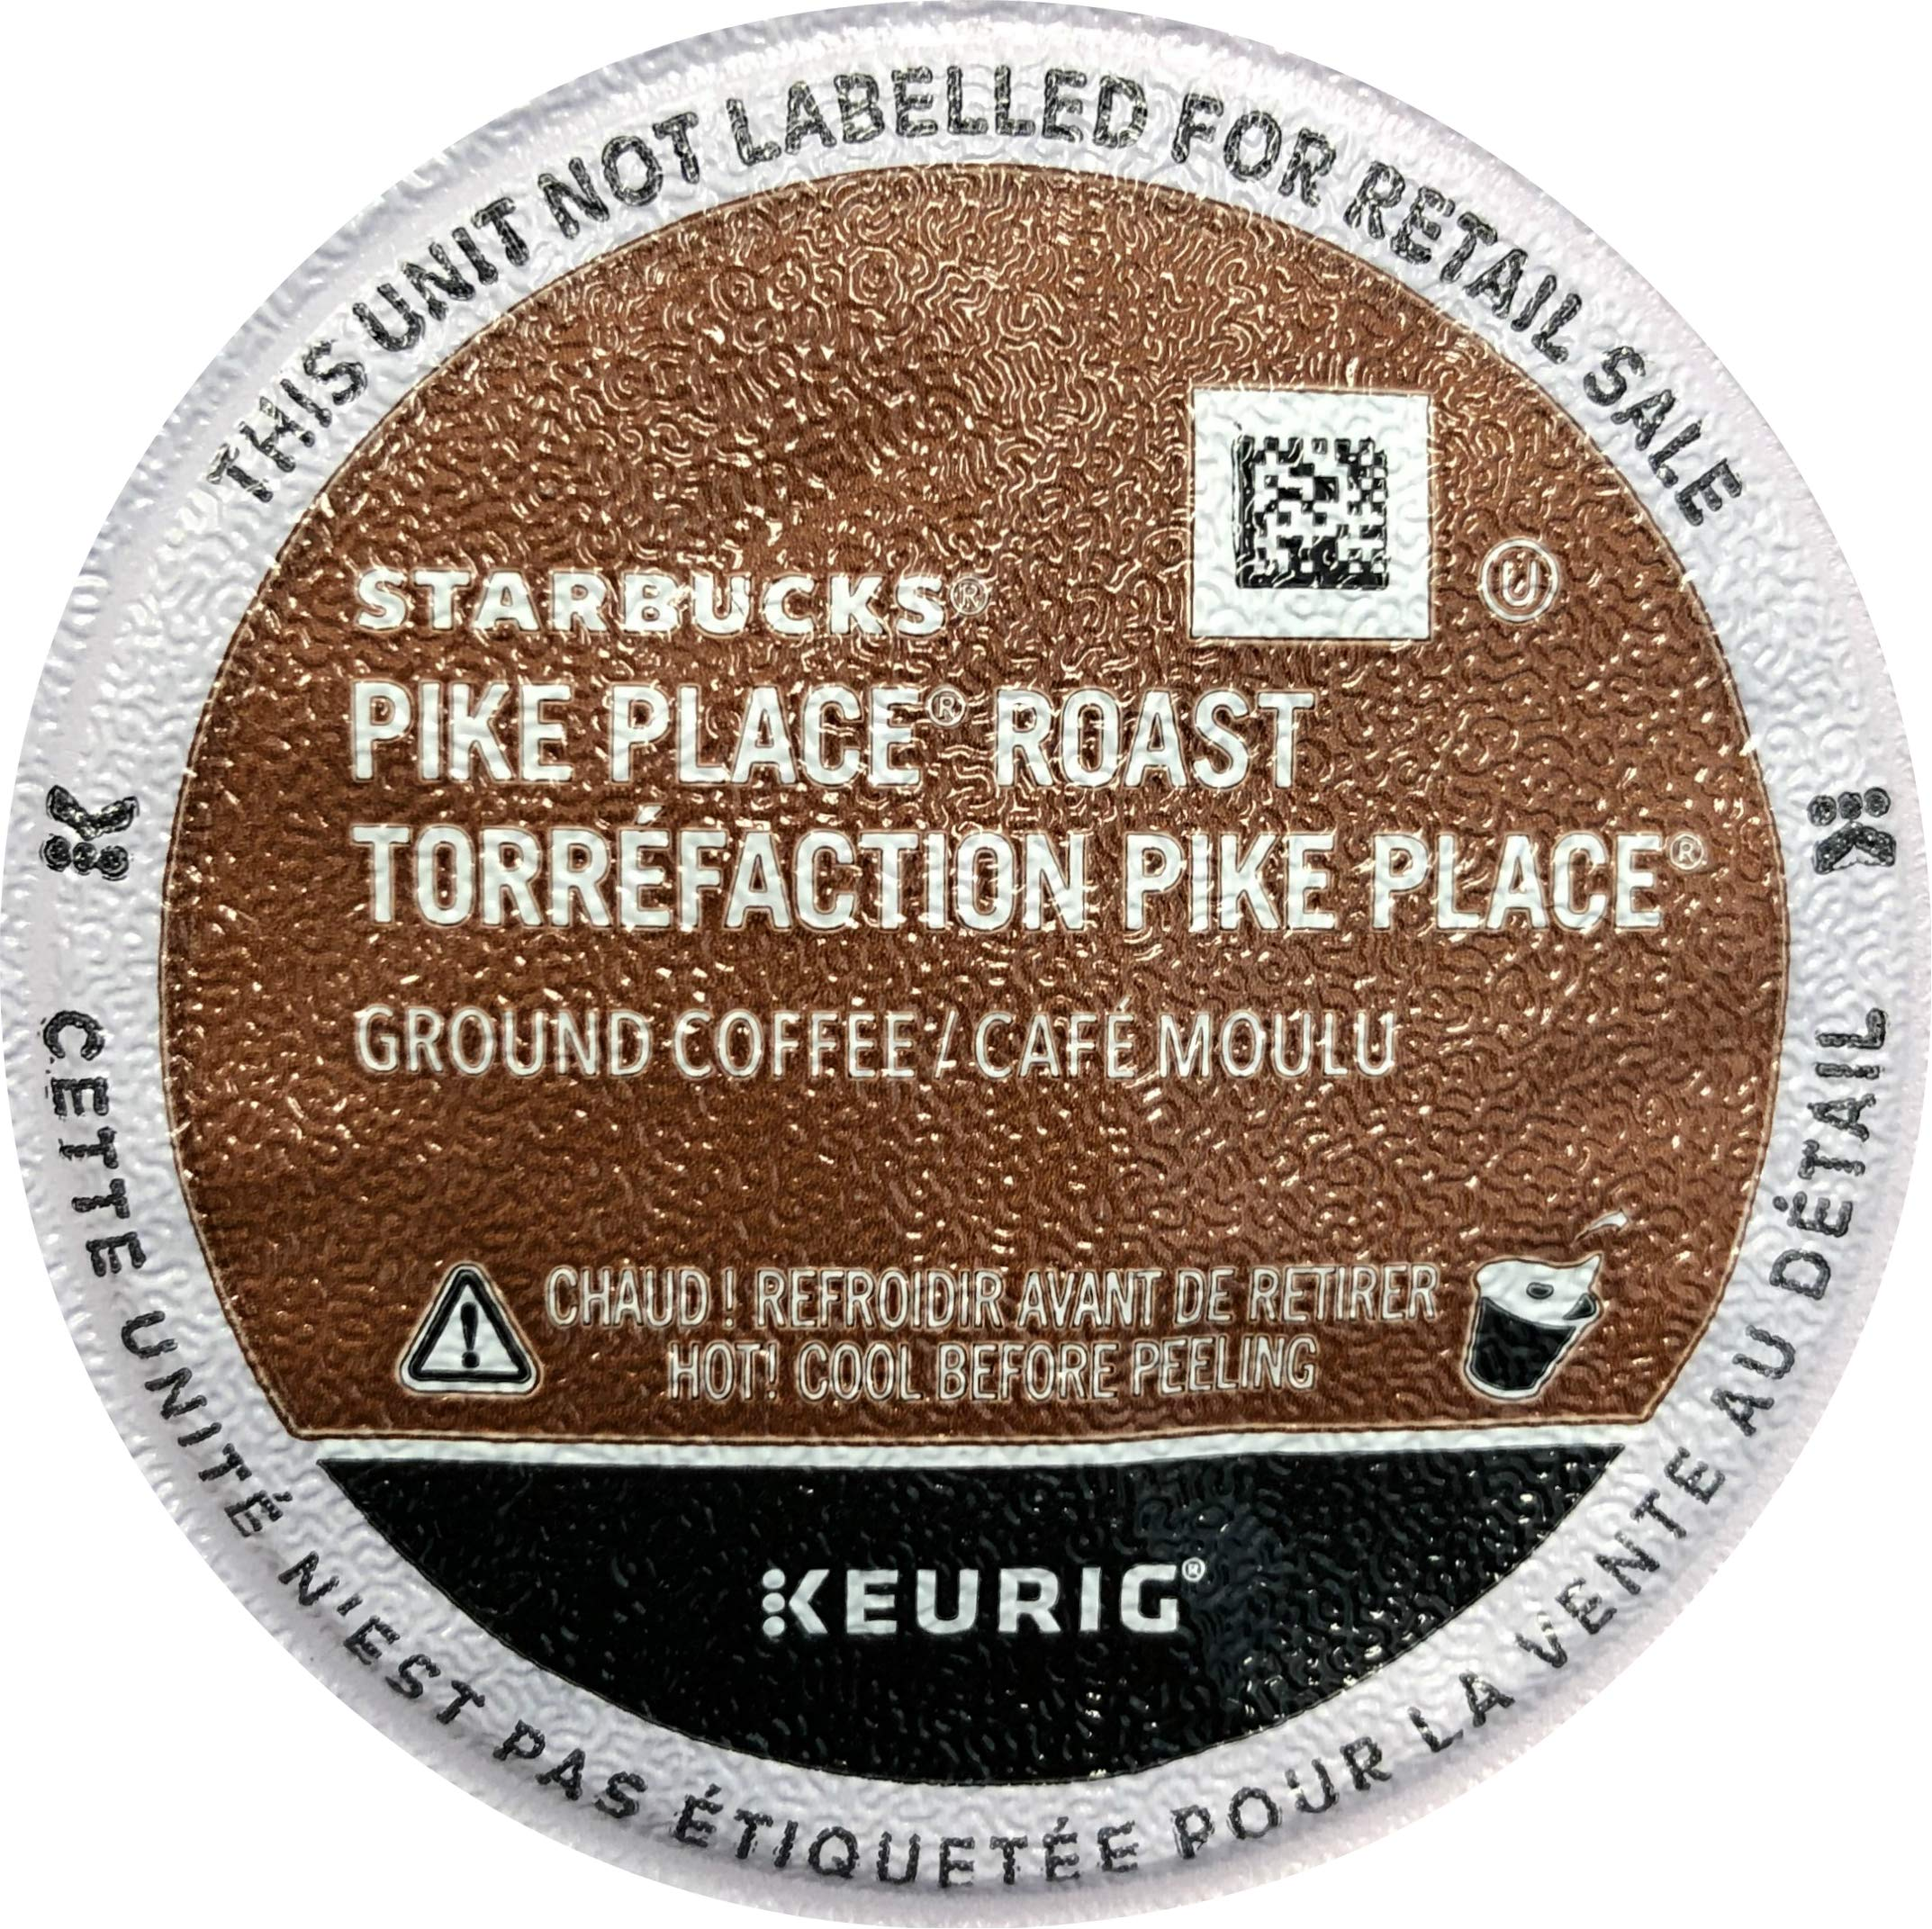 Starbucks Pike Place Roast Coffee K-Cup Portion Packs for Keurig Brewers, 72 Count (3 boxes of 24 K-Cups) by Starbucks